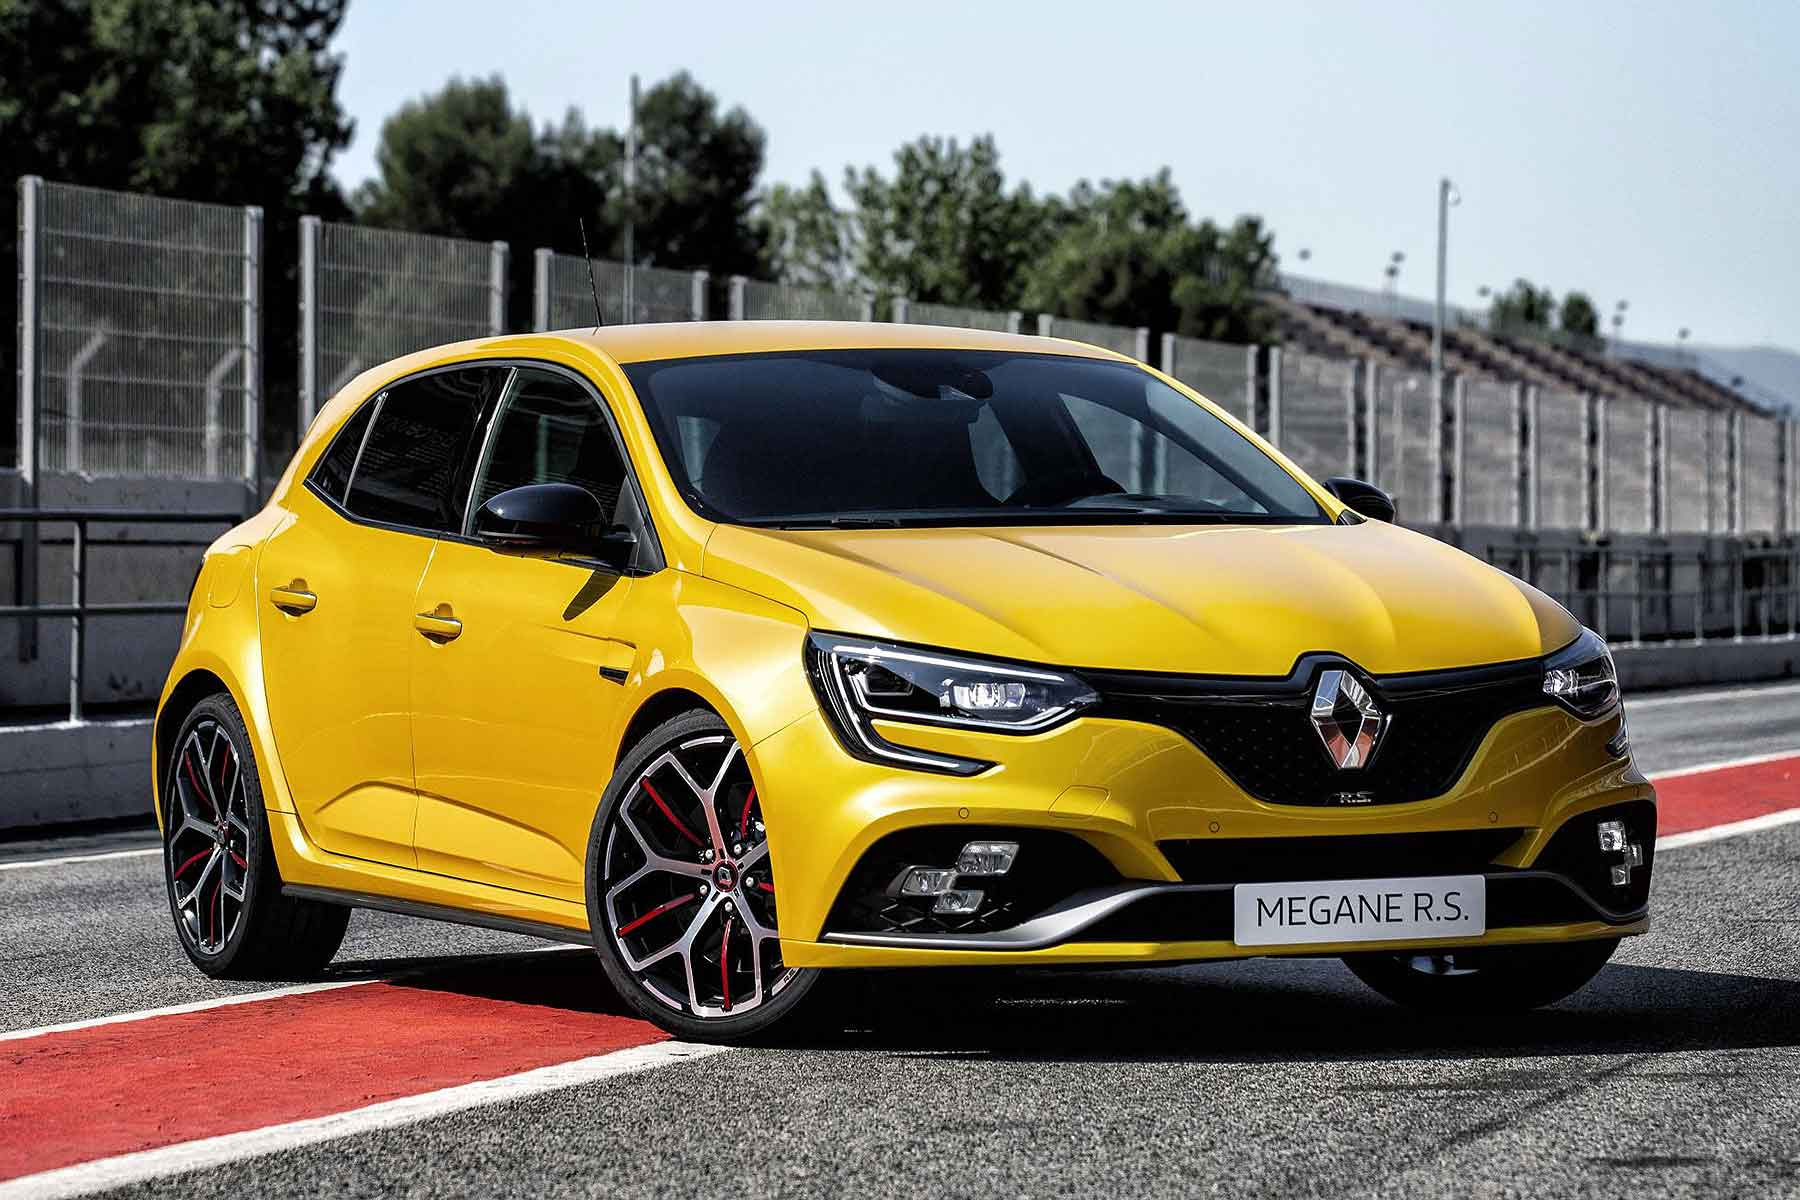 2018 renault megane r s trophy is most powerful renault sport ever motoring research. Black Bedroom Furniture Sets. Home Design Ideas